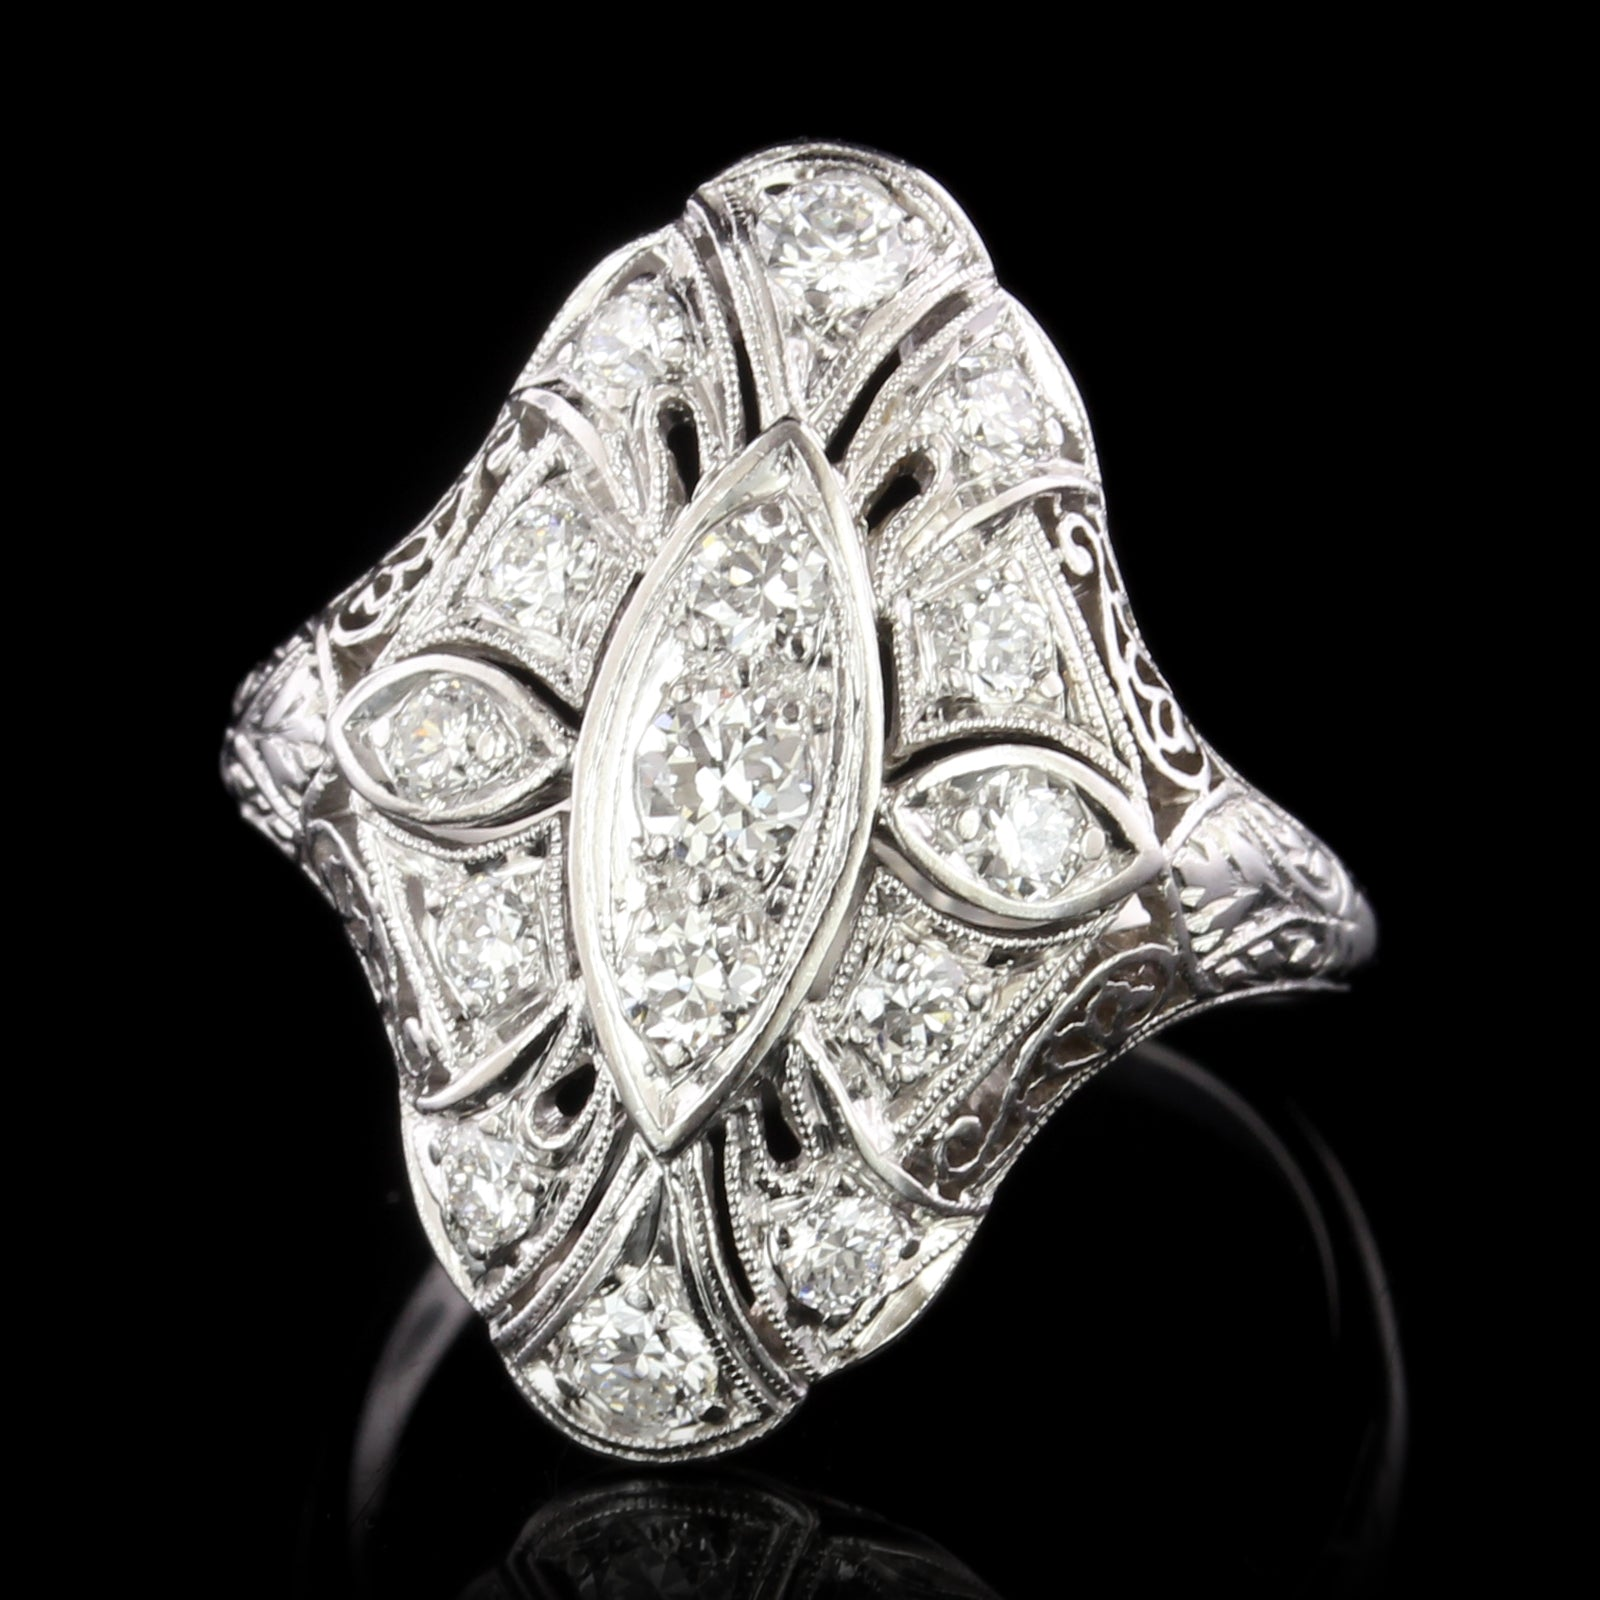 Vintage Platinum and 14K White Gold Estate Diamond Ring